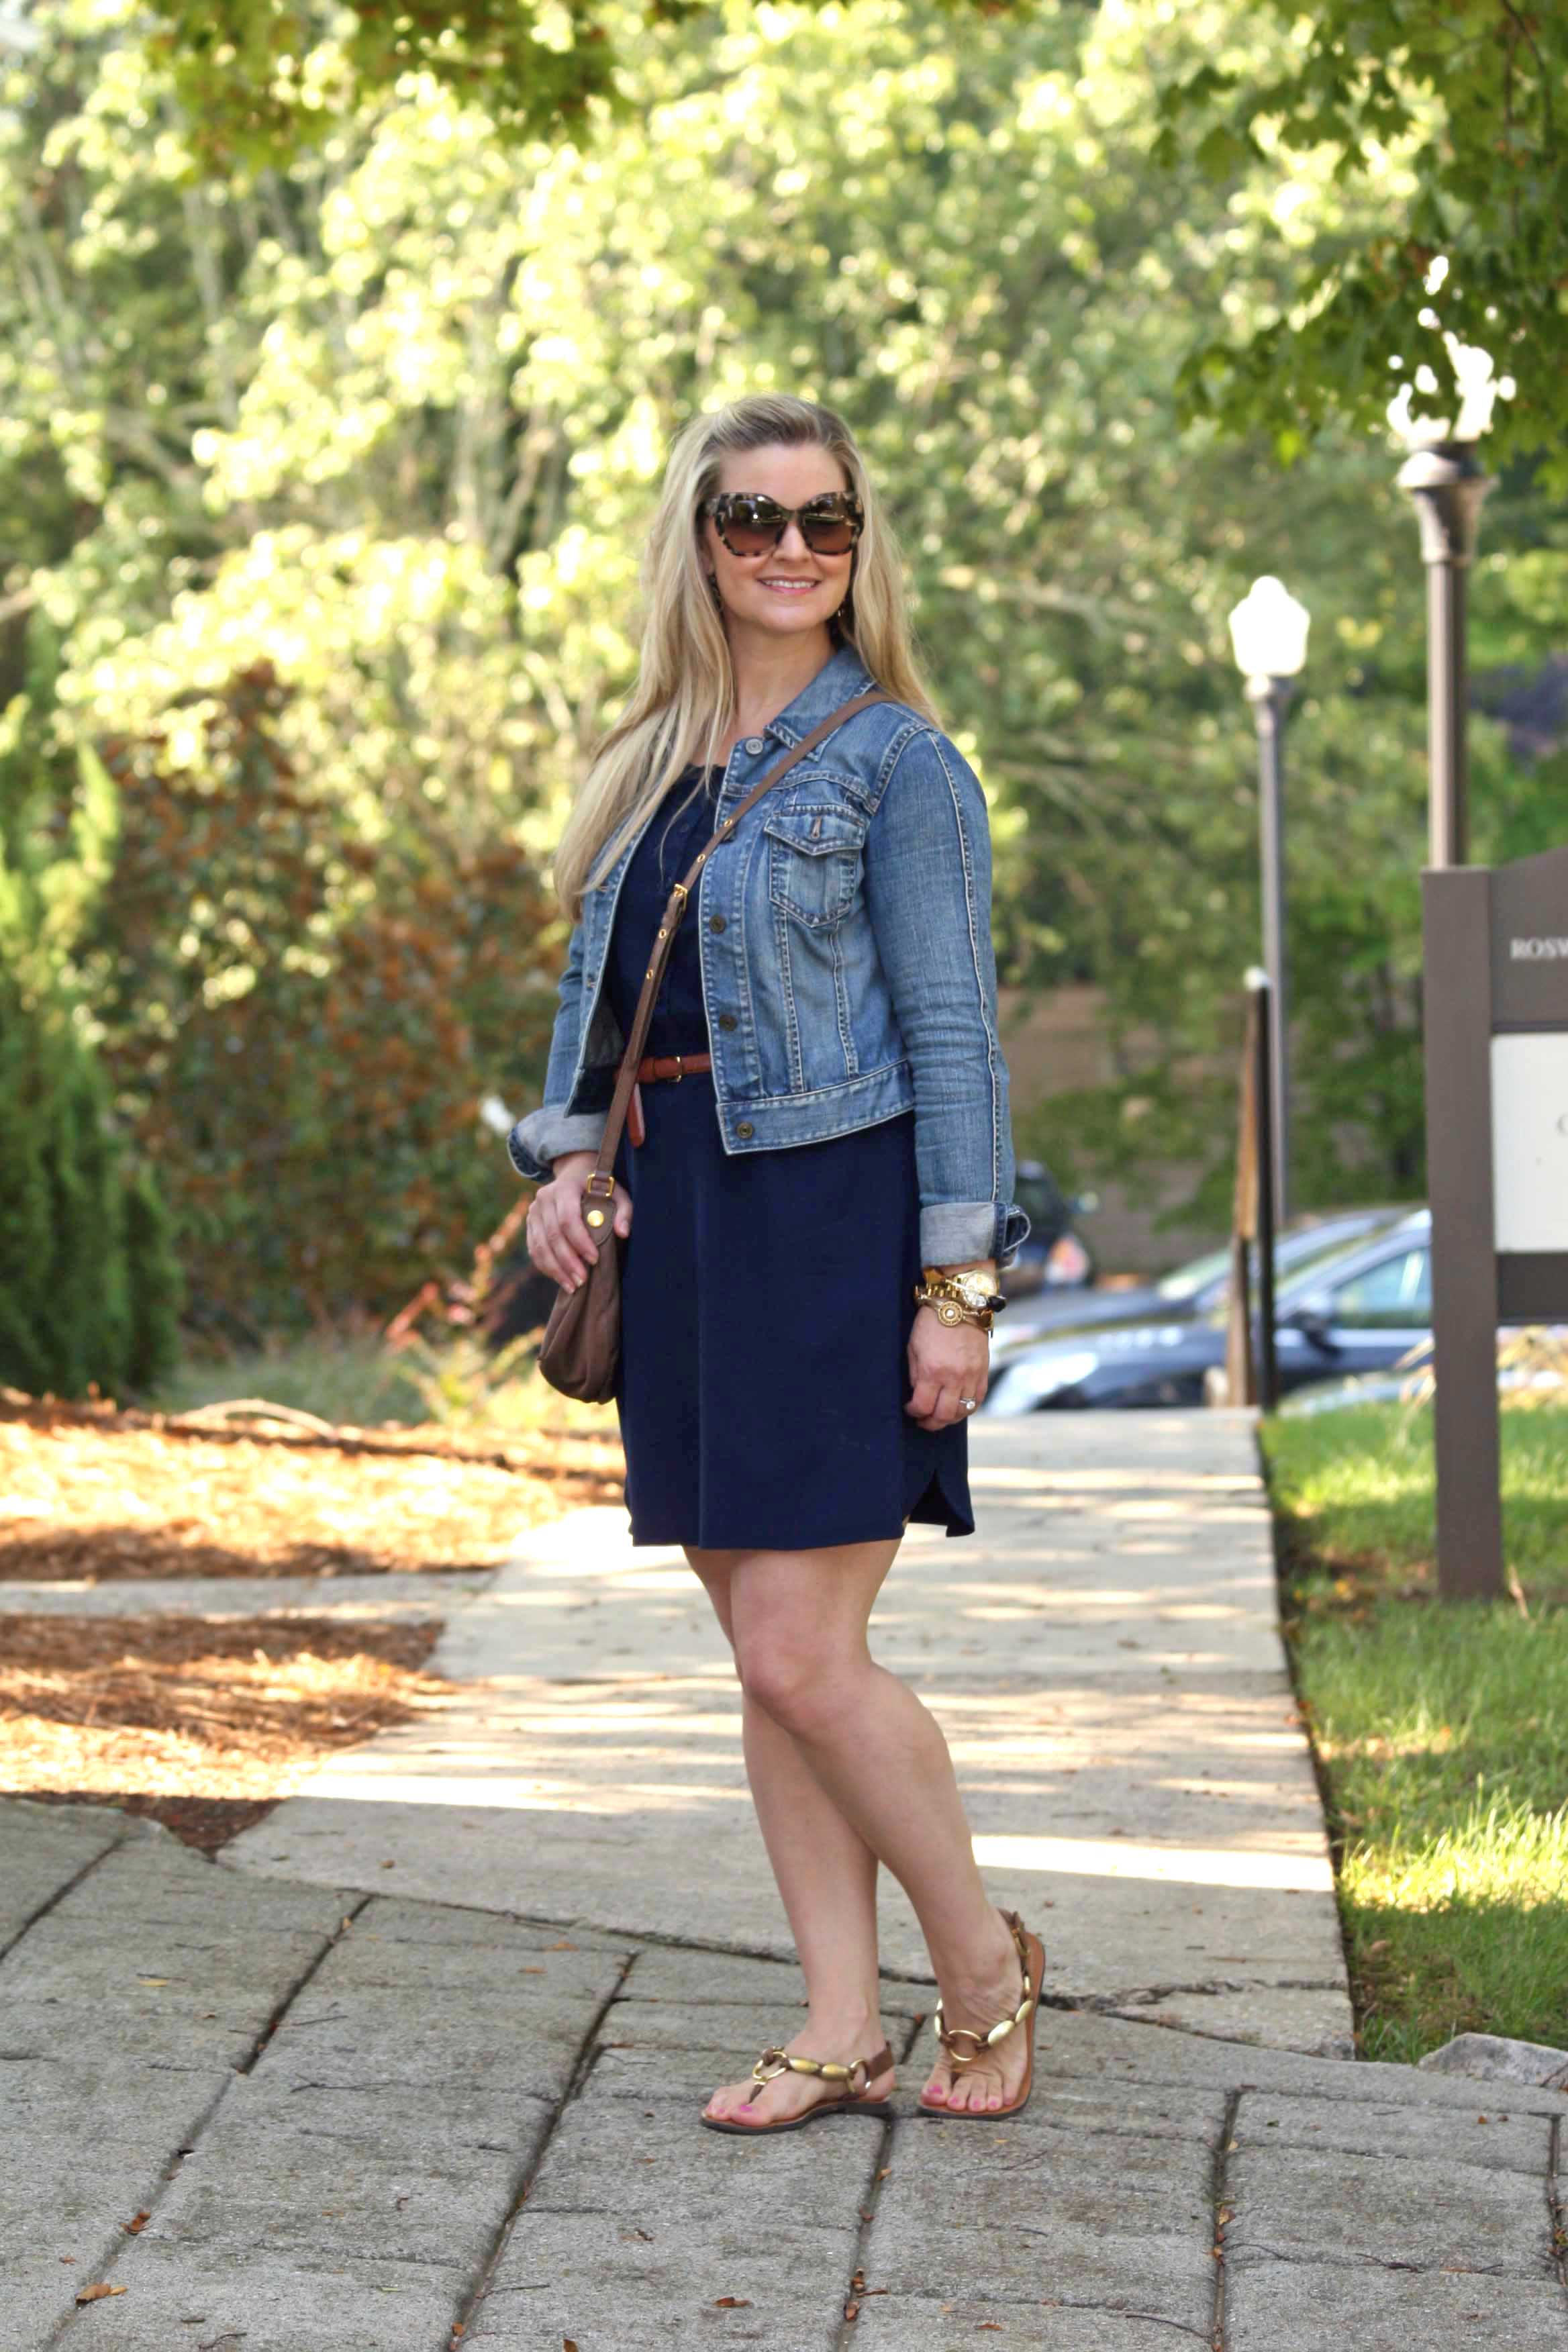 Dress And Denim Jacket - Coat Nj